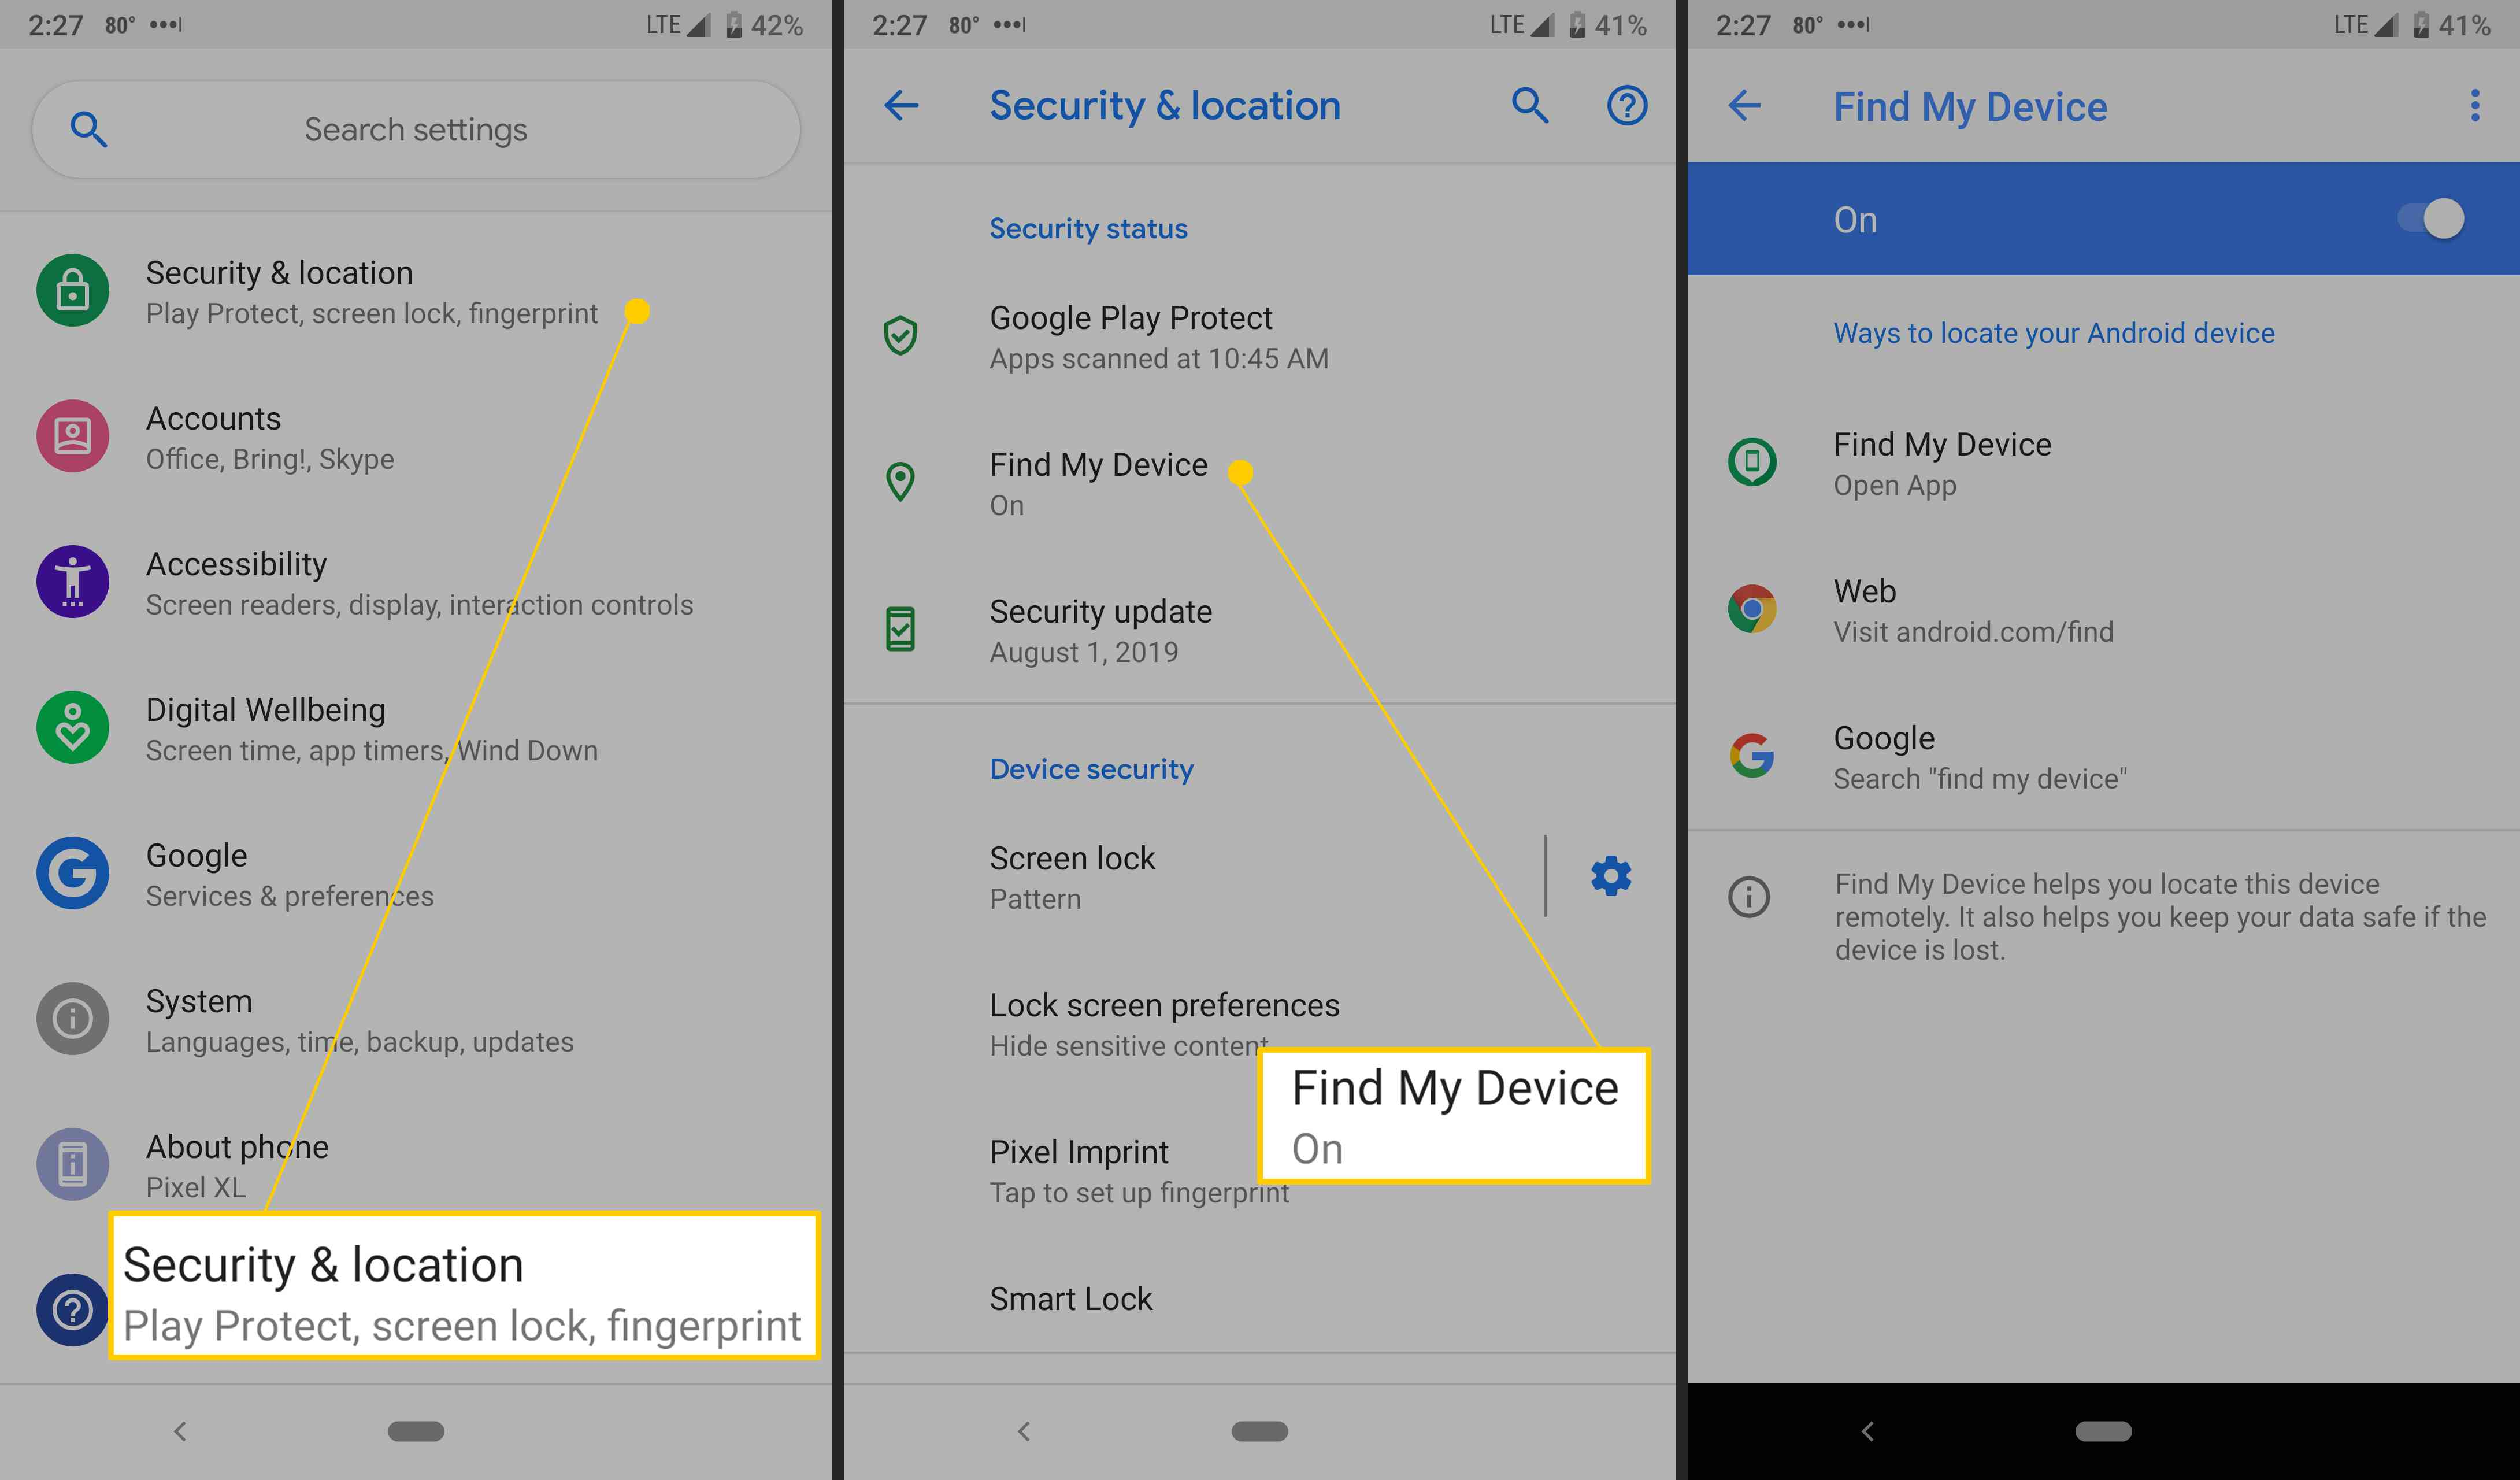 Android's Google Find My Device settings.